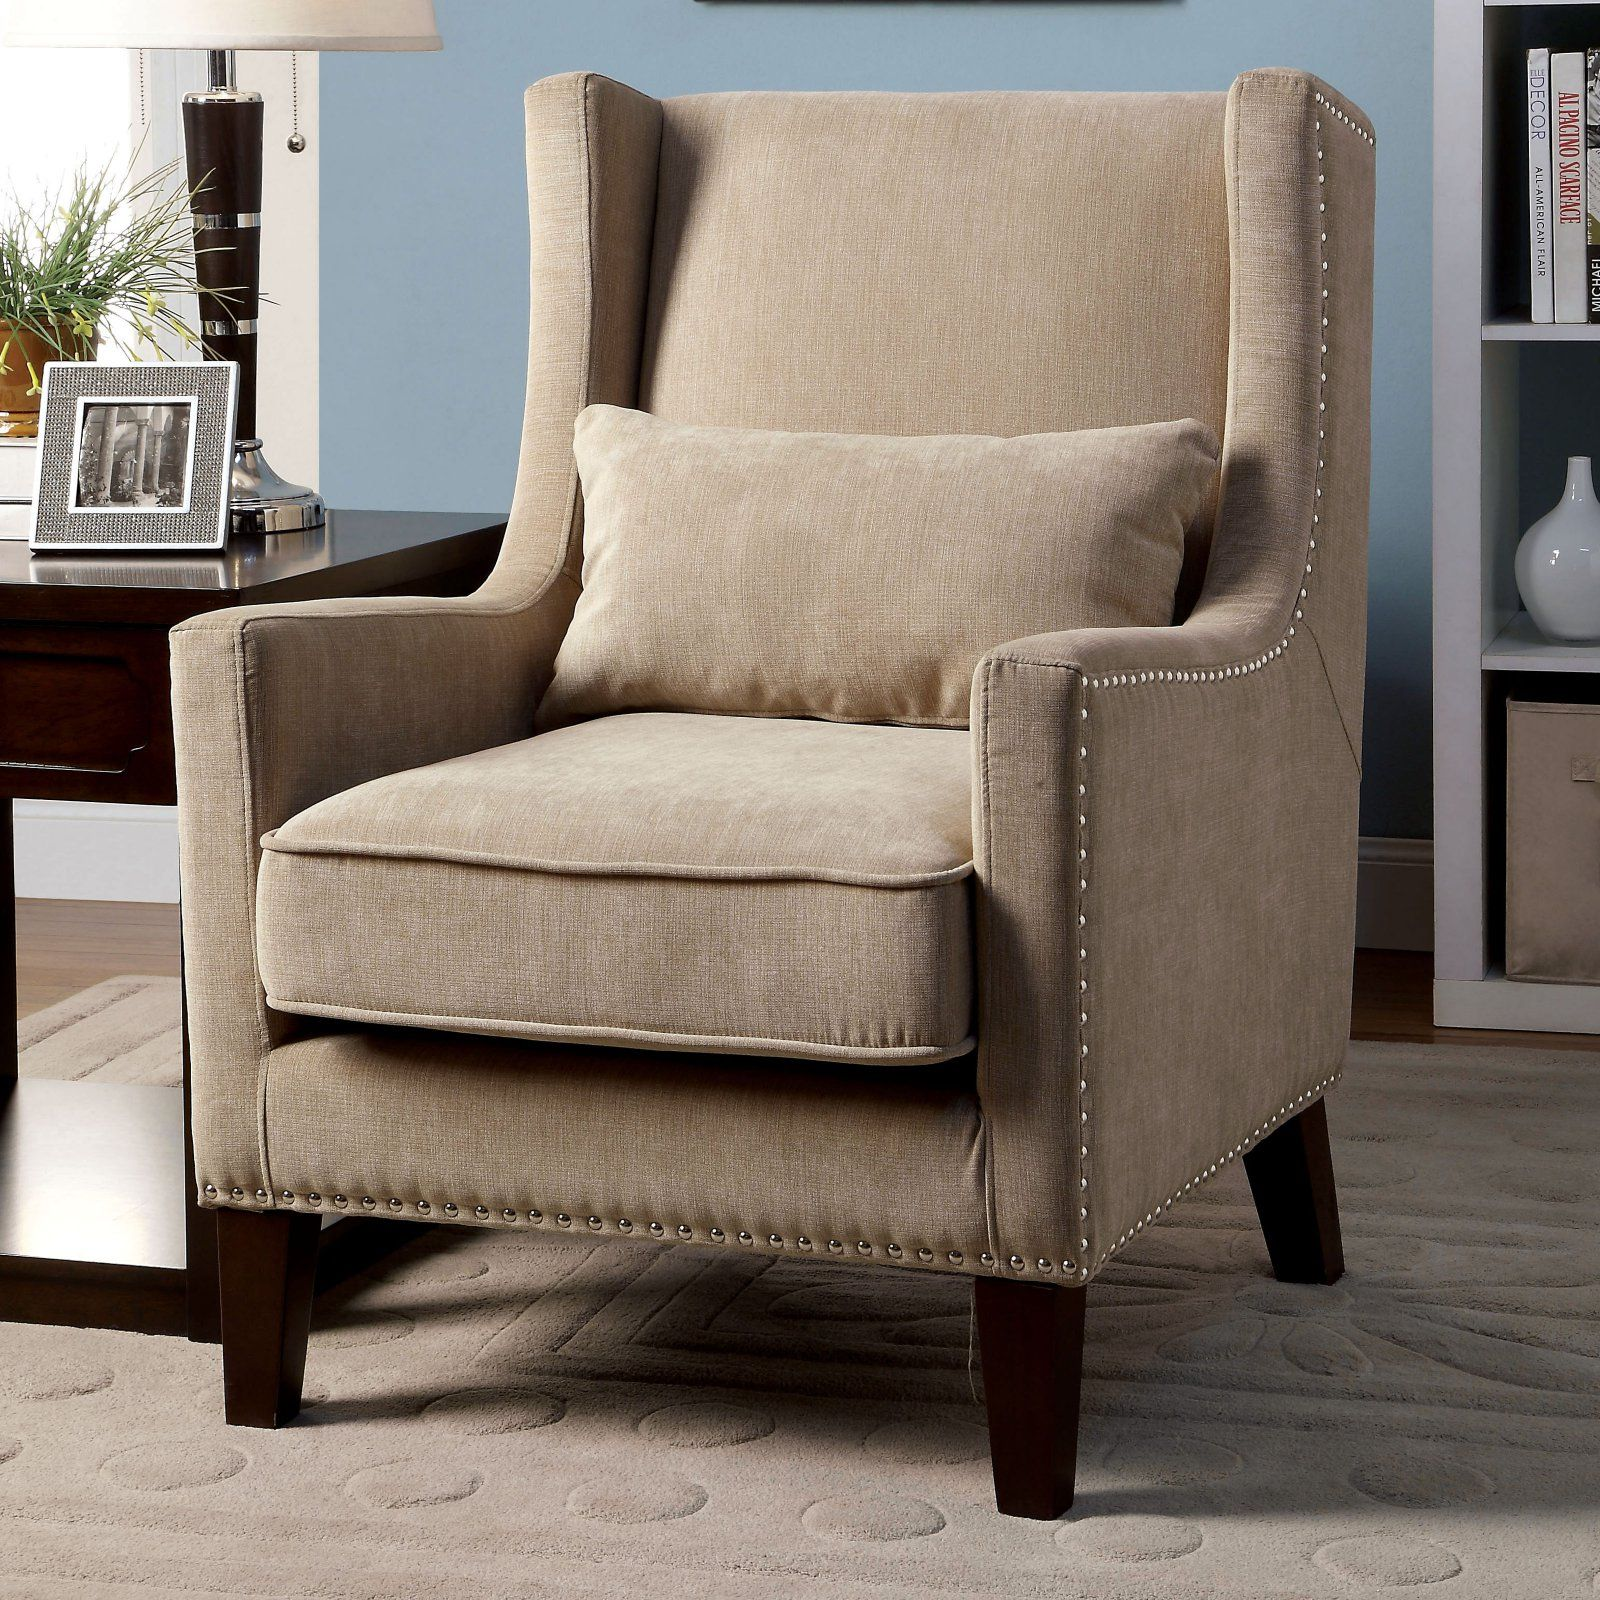 Furniture Of America Striped Stellas Wingback Accent Chair: Furniture Of America Keller Wingback Chair Ivory